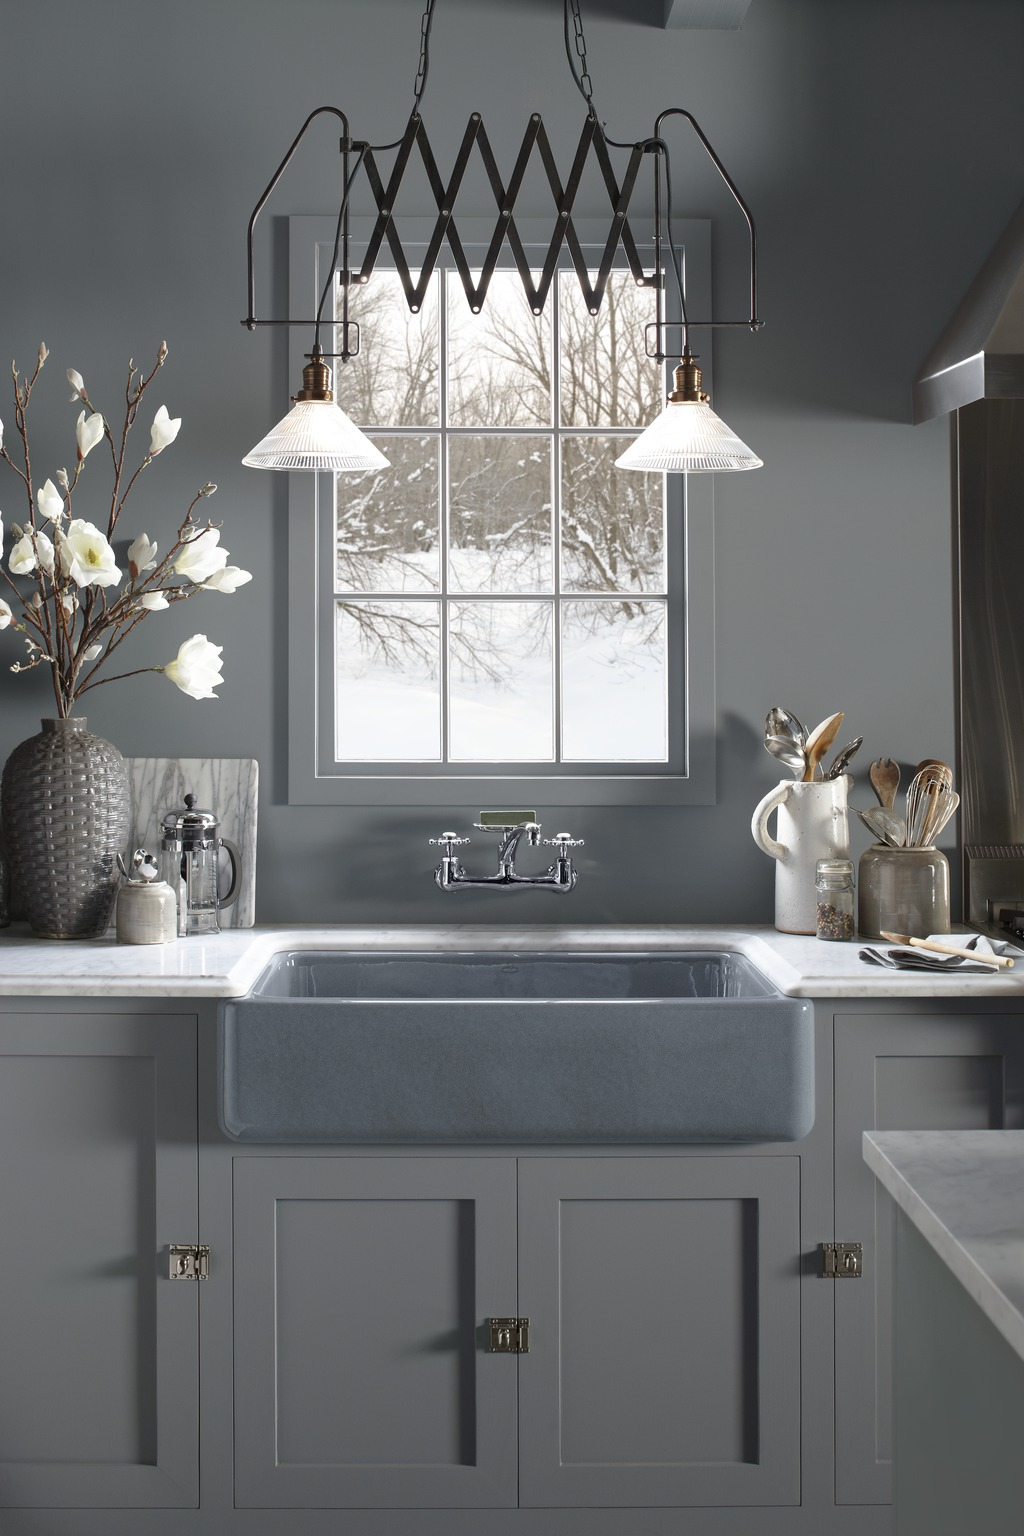 Kitchen Sinks & Faucets Store